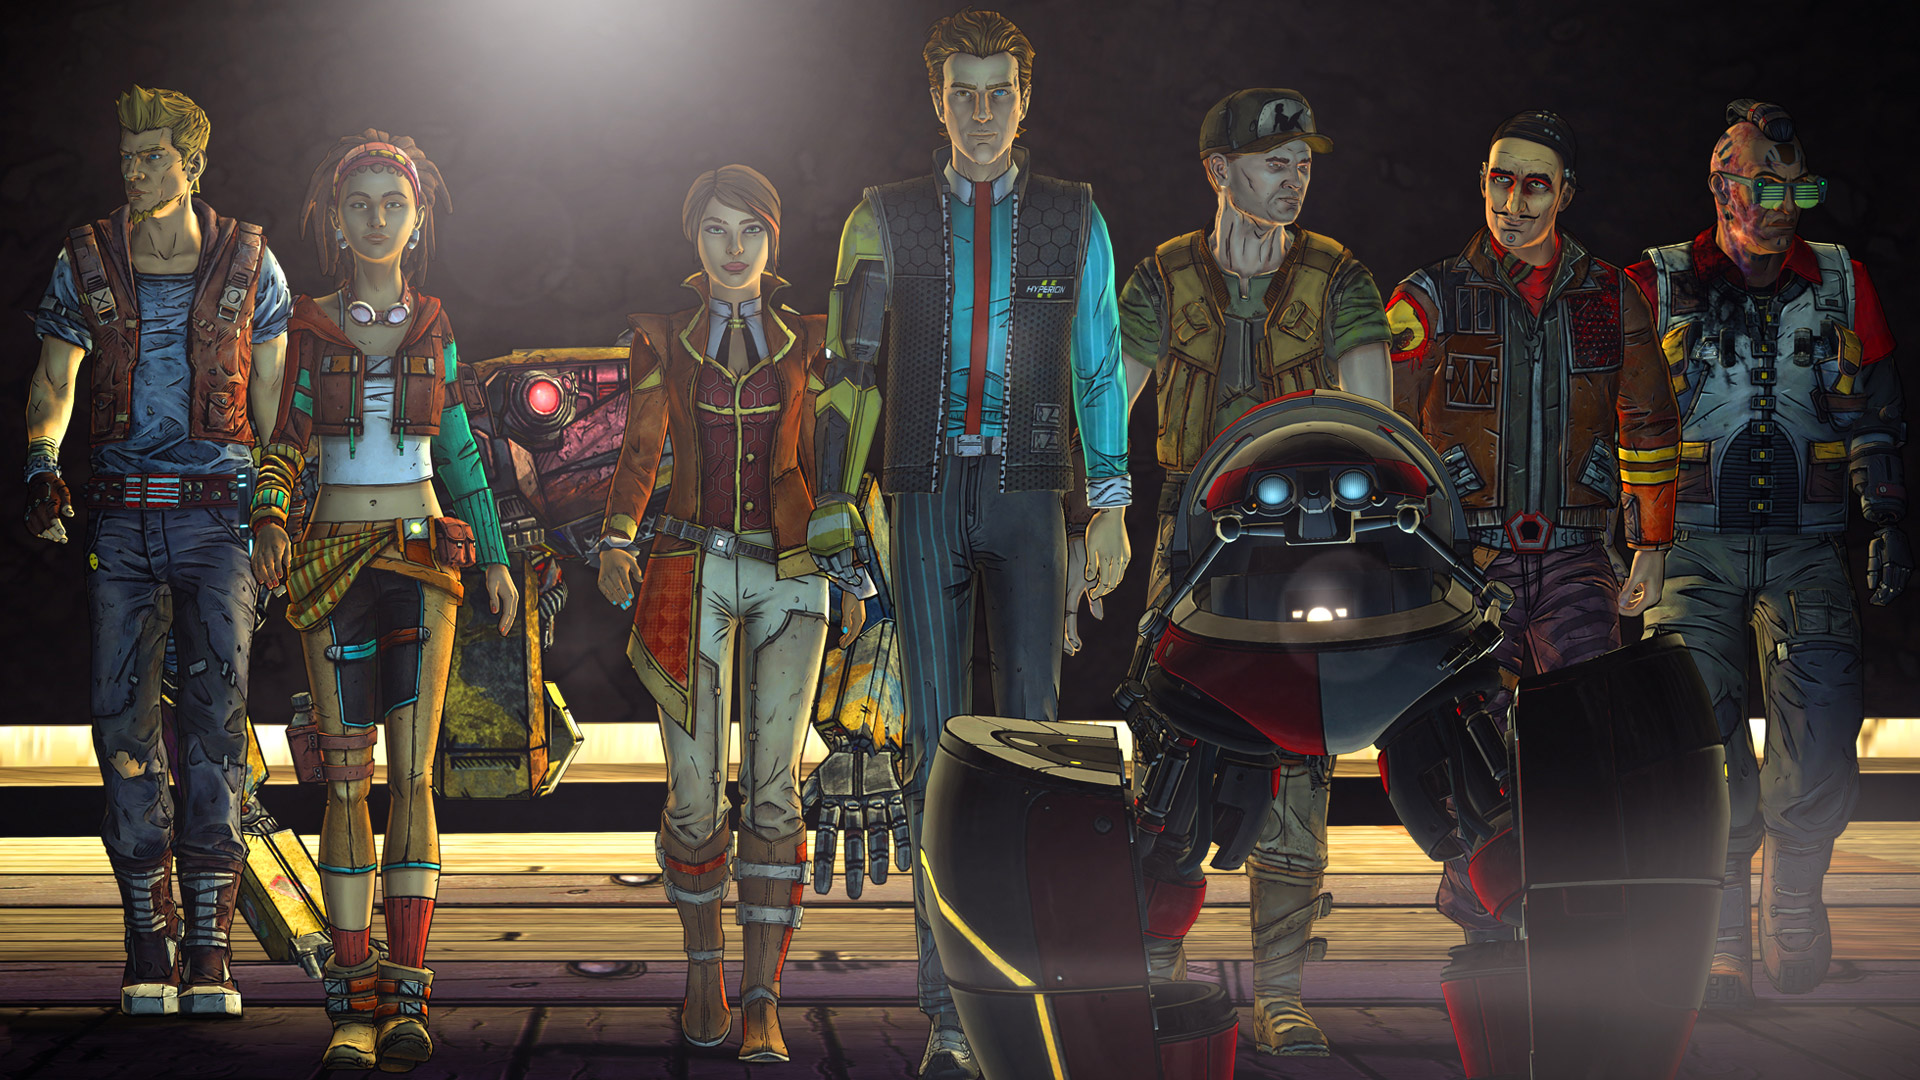 Free Tales from the Borderlands Wallpaper in 1920x1080